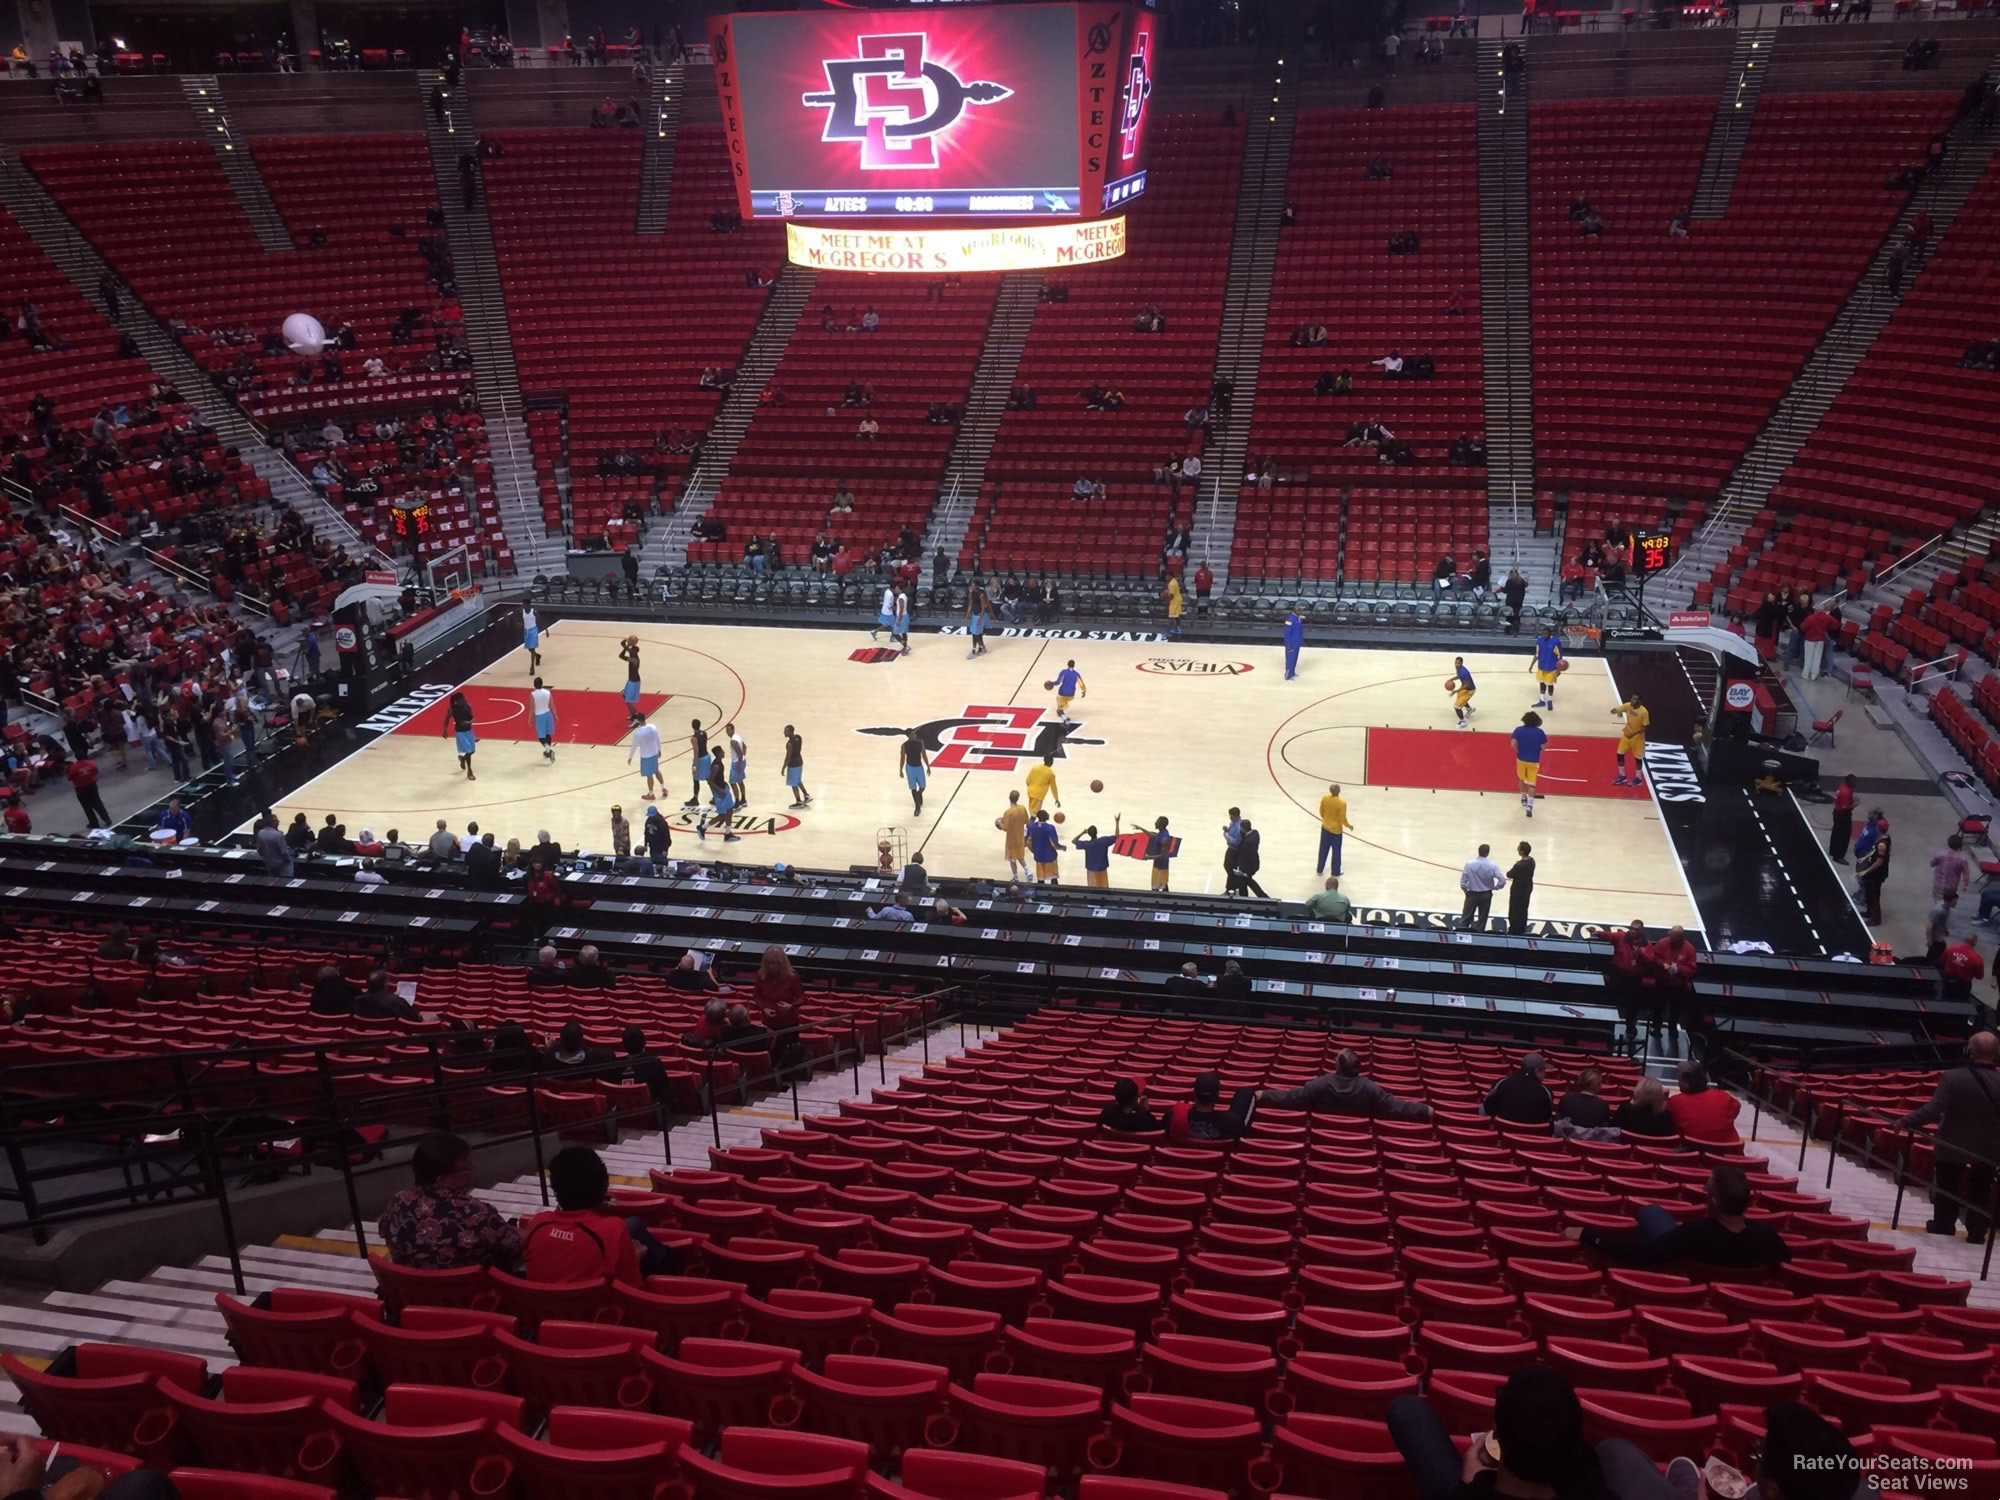 Viejas Arena Section S - RateYourSeats.com